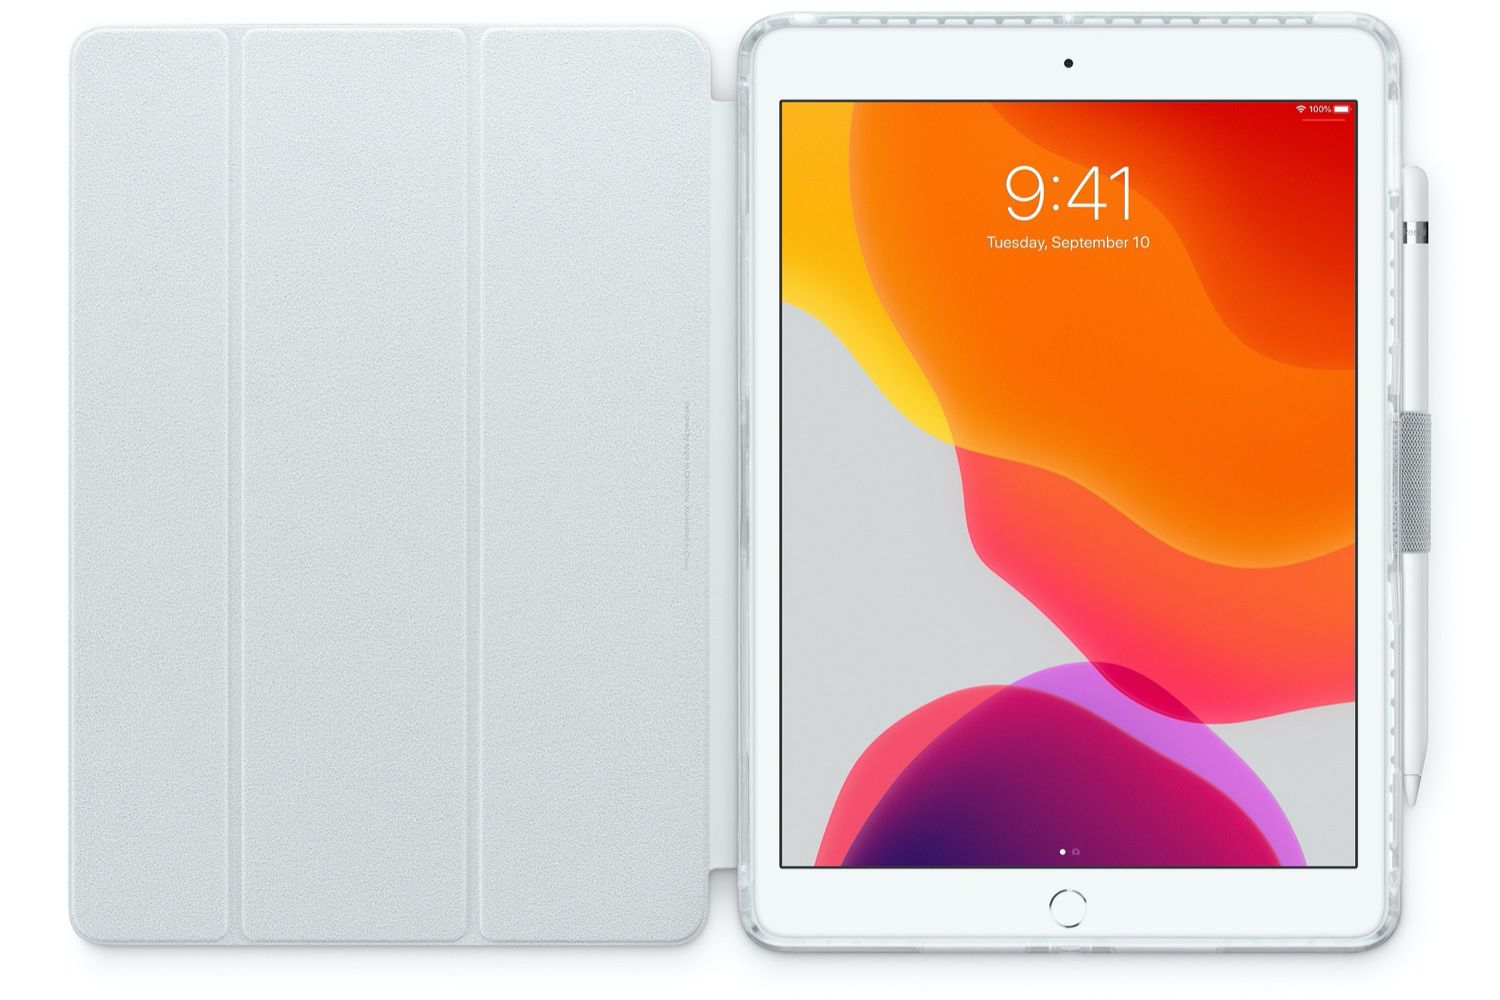 iPad 7 : une coque Otterbox adaptée aux Pencil et Smart Keyboard